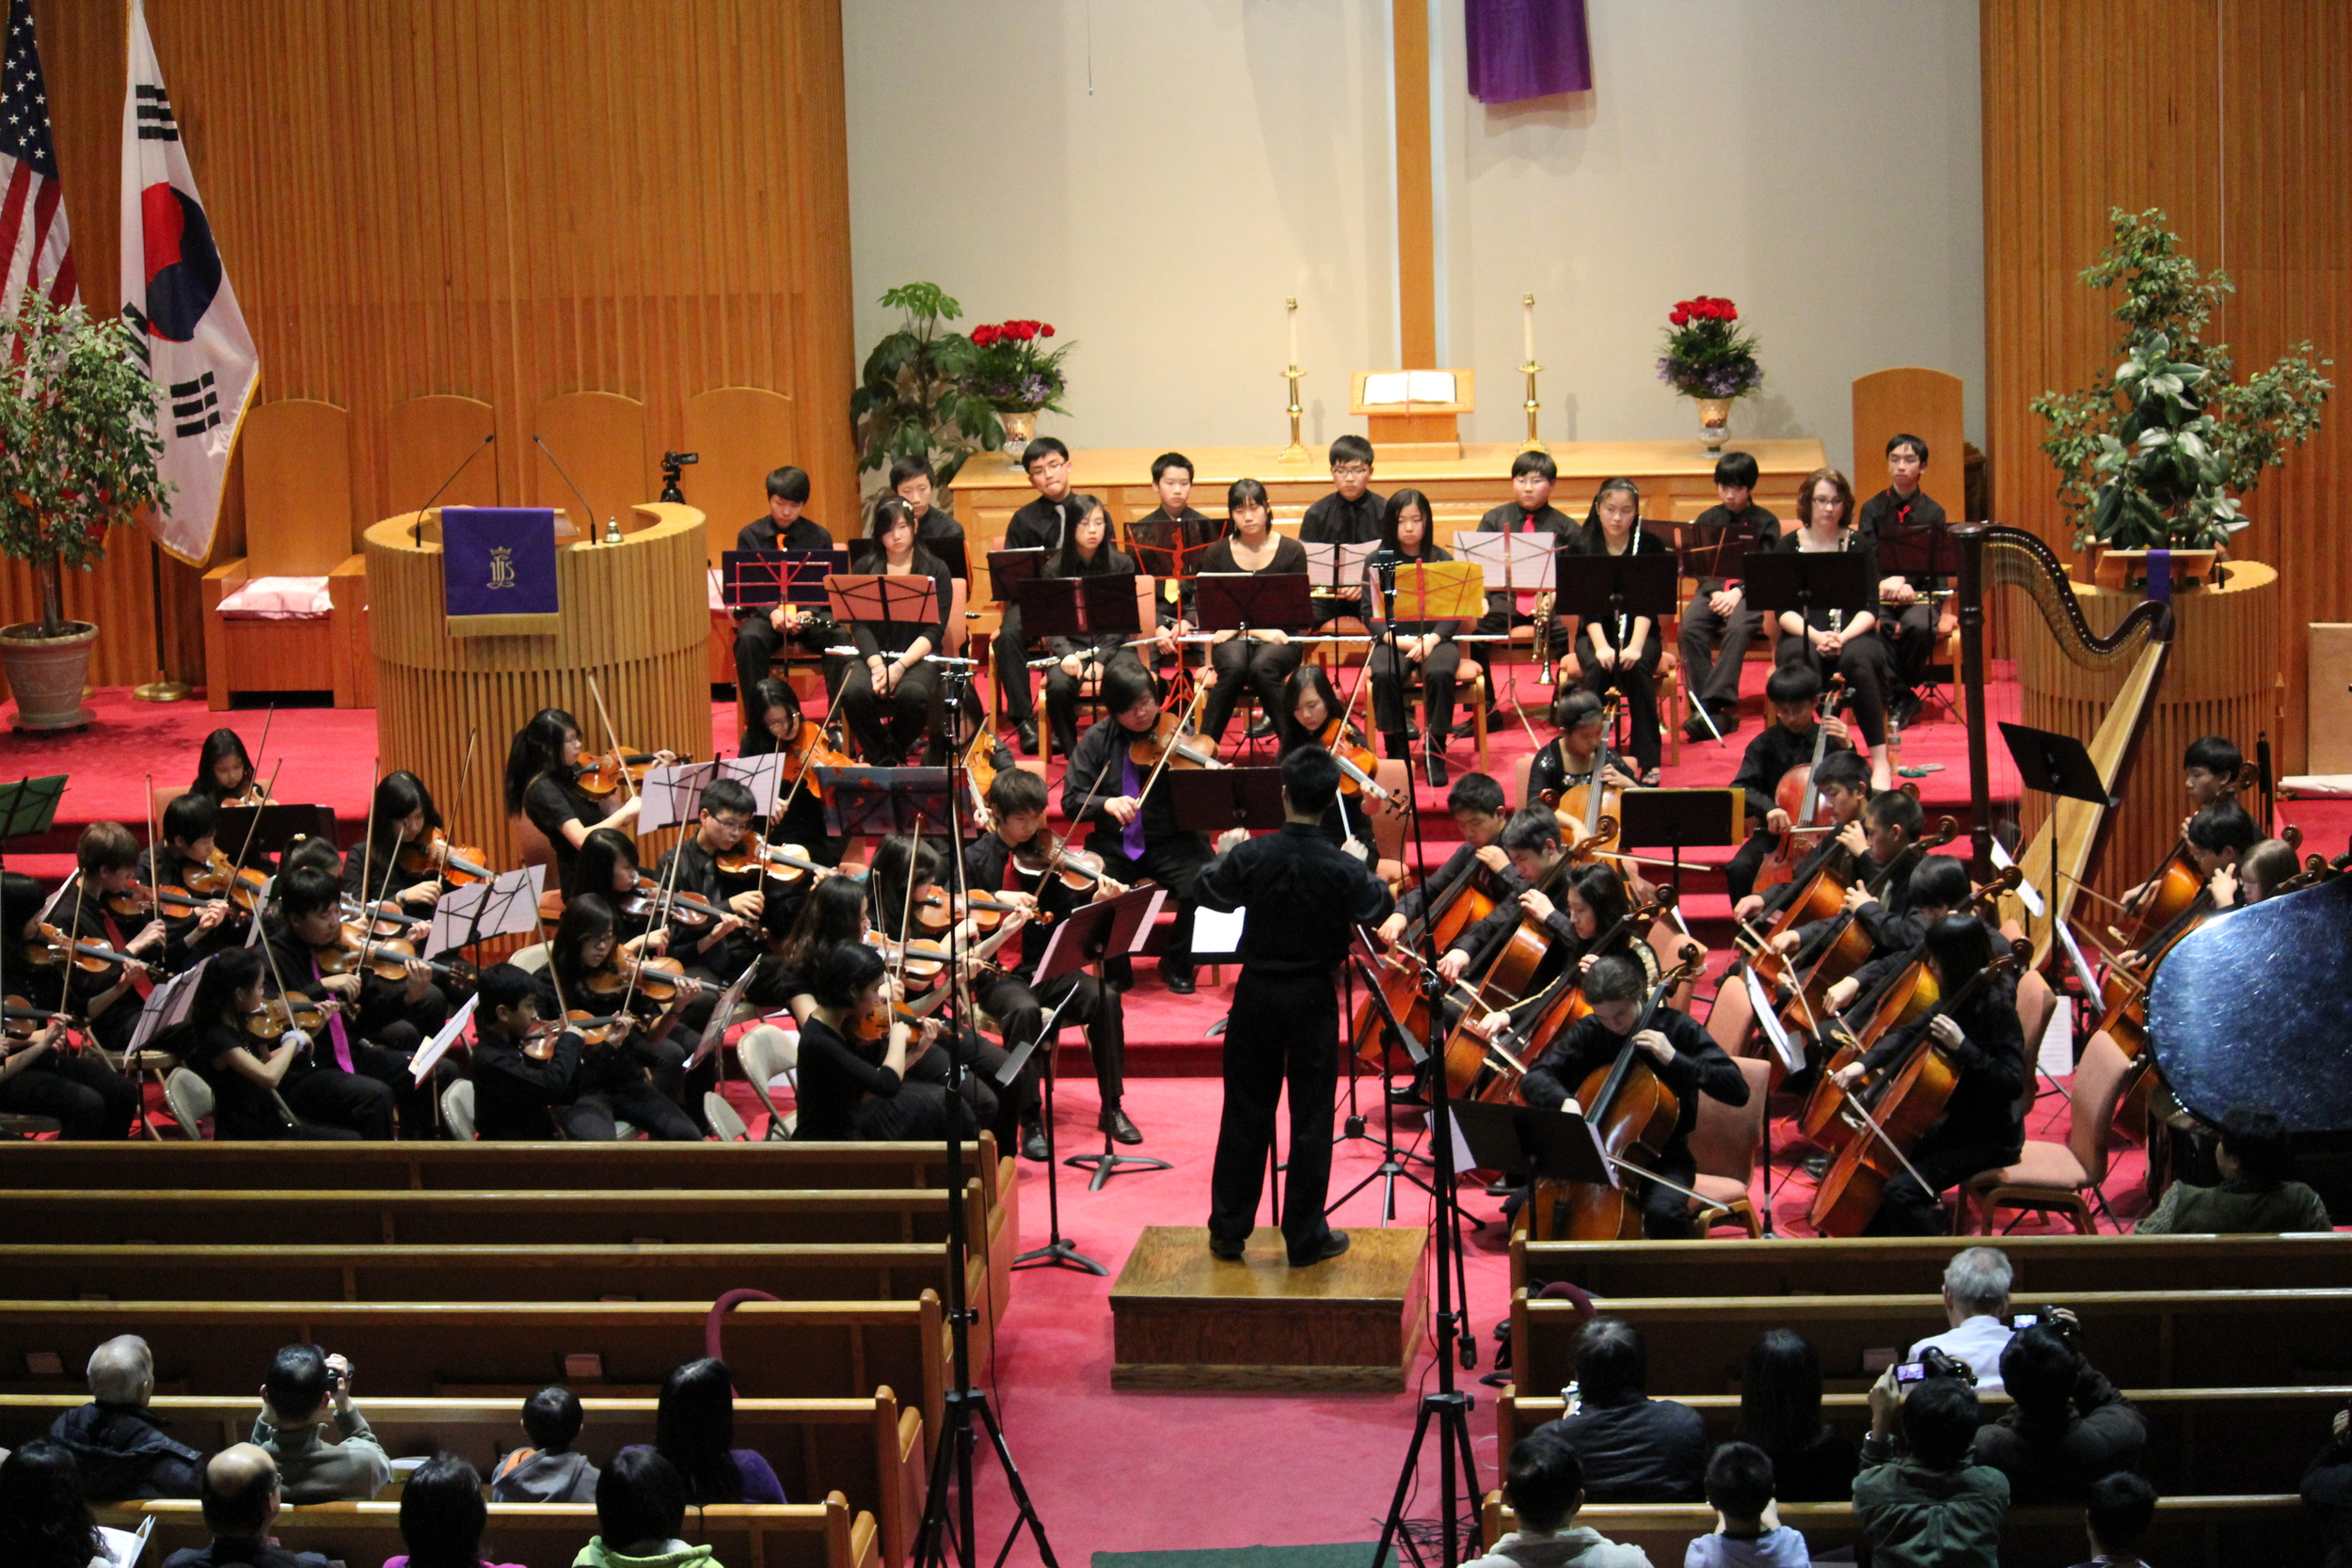 Composer and violinist Matthew Liu conducts the premiere of one of his new works